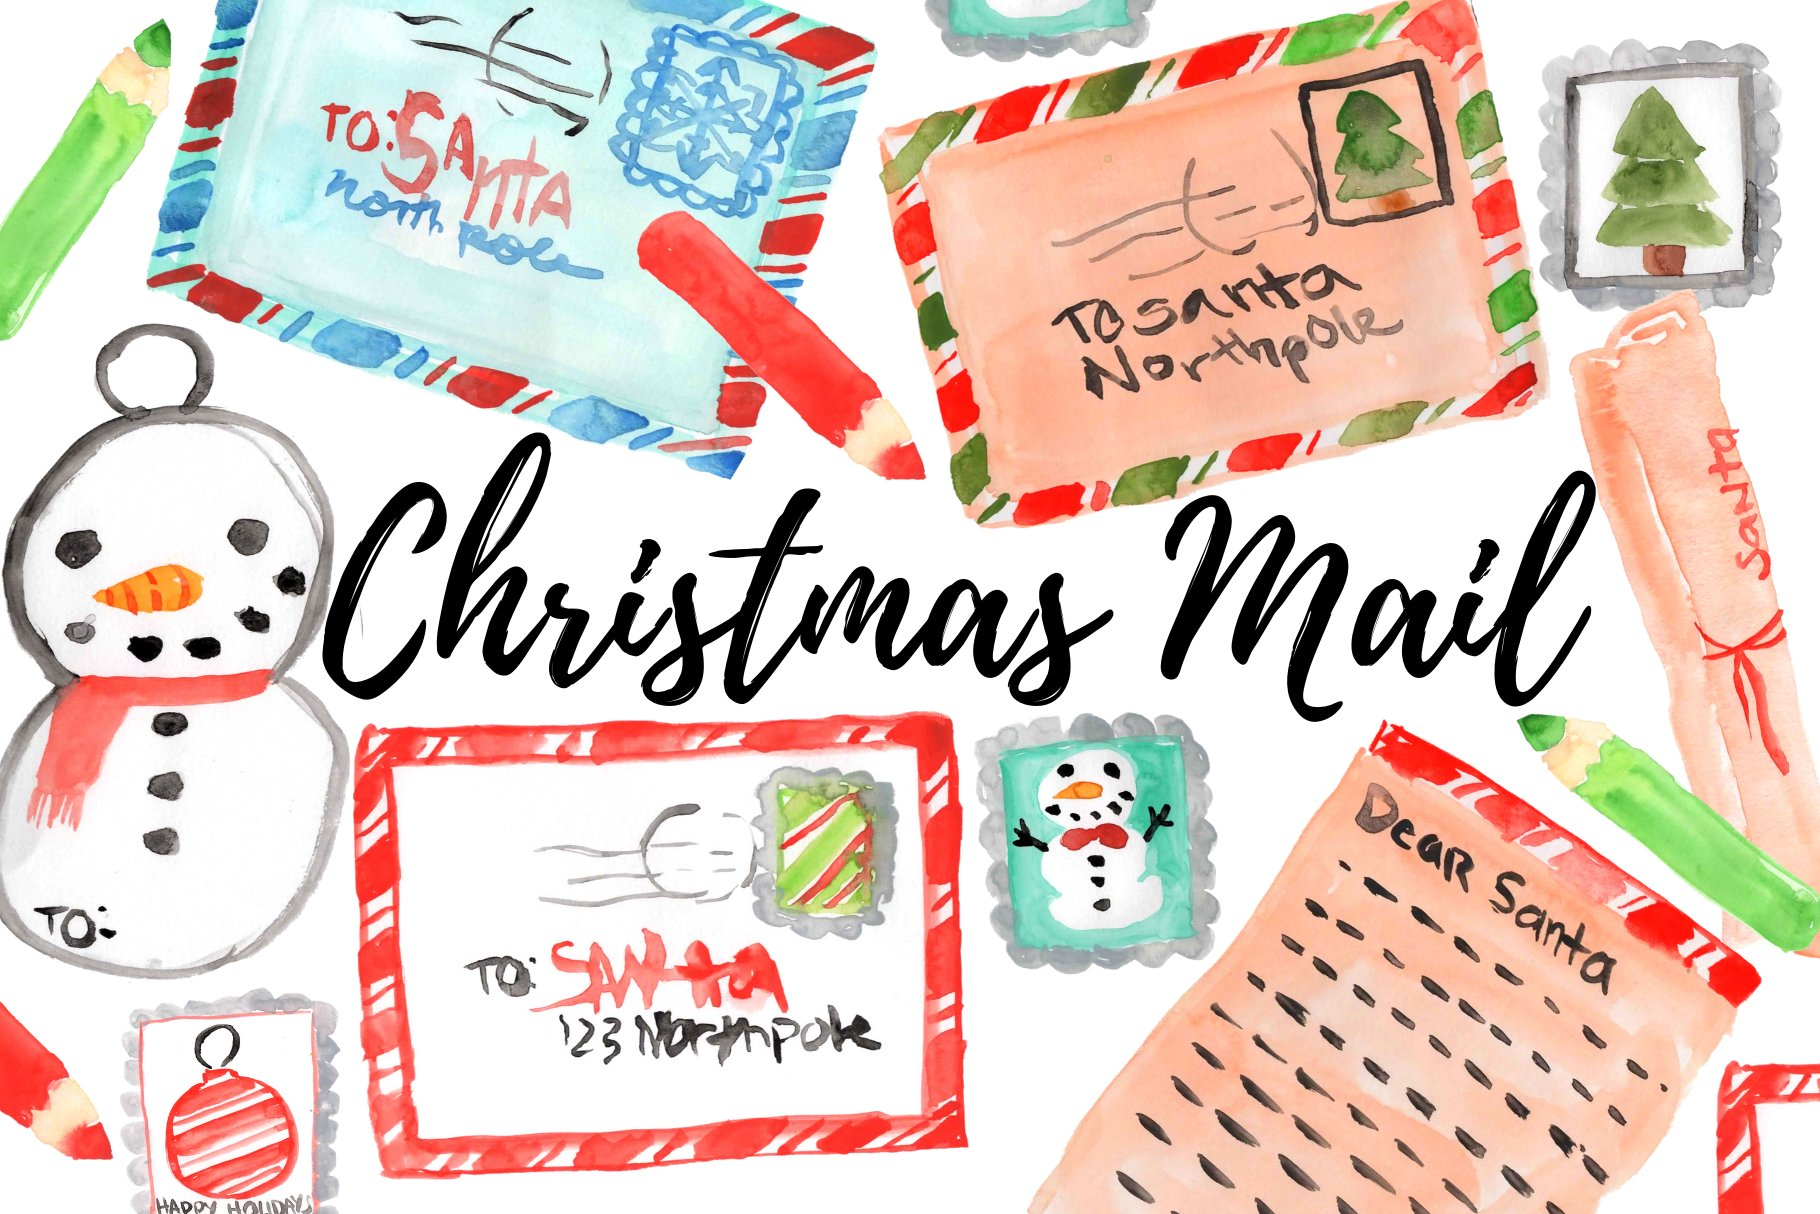 Christmas mail clipart graphic freeuse stock Watercolor Christmas Mail Clipart graphic freeuse stock